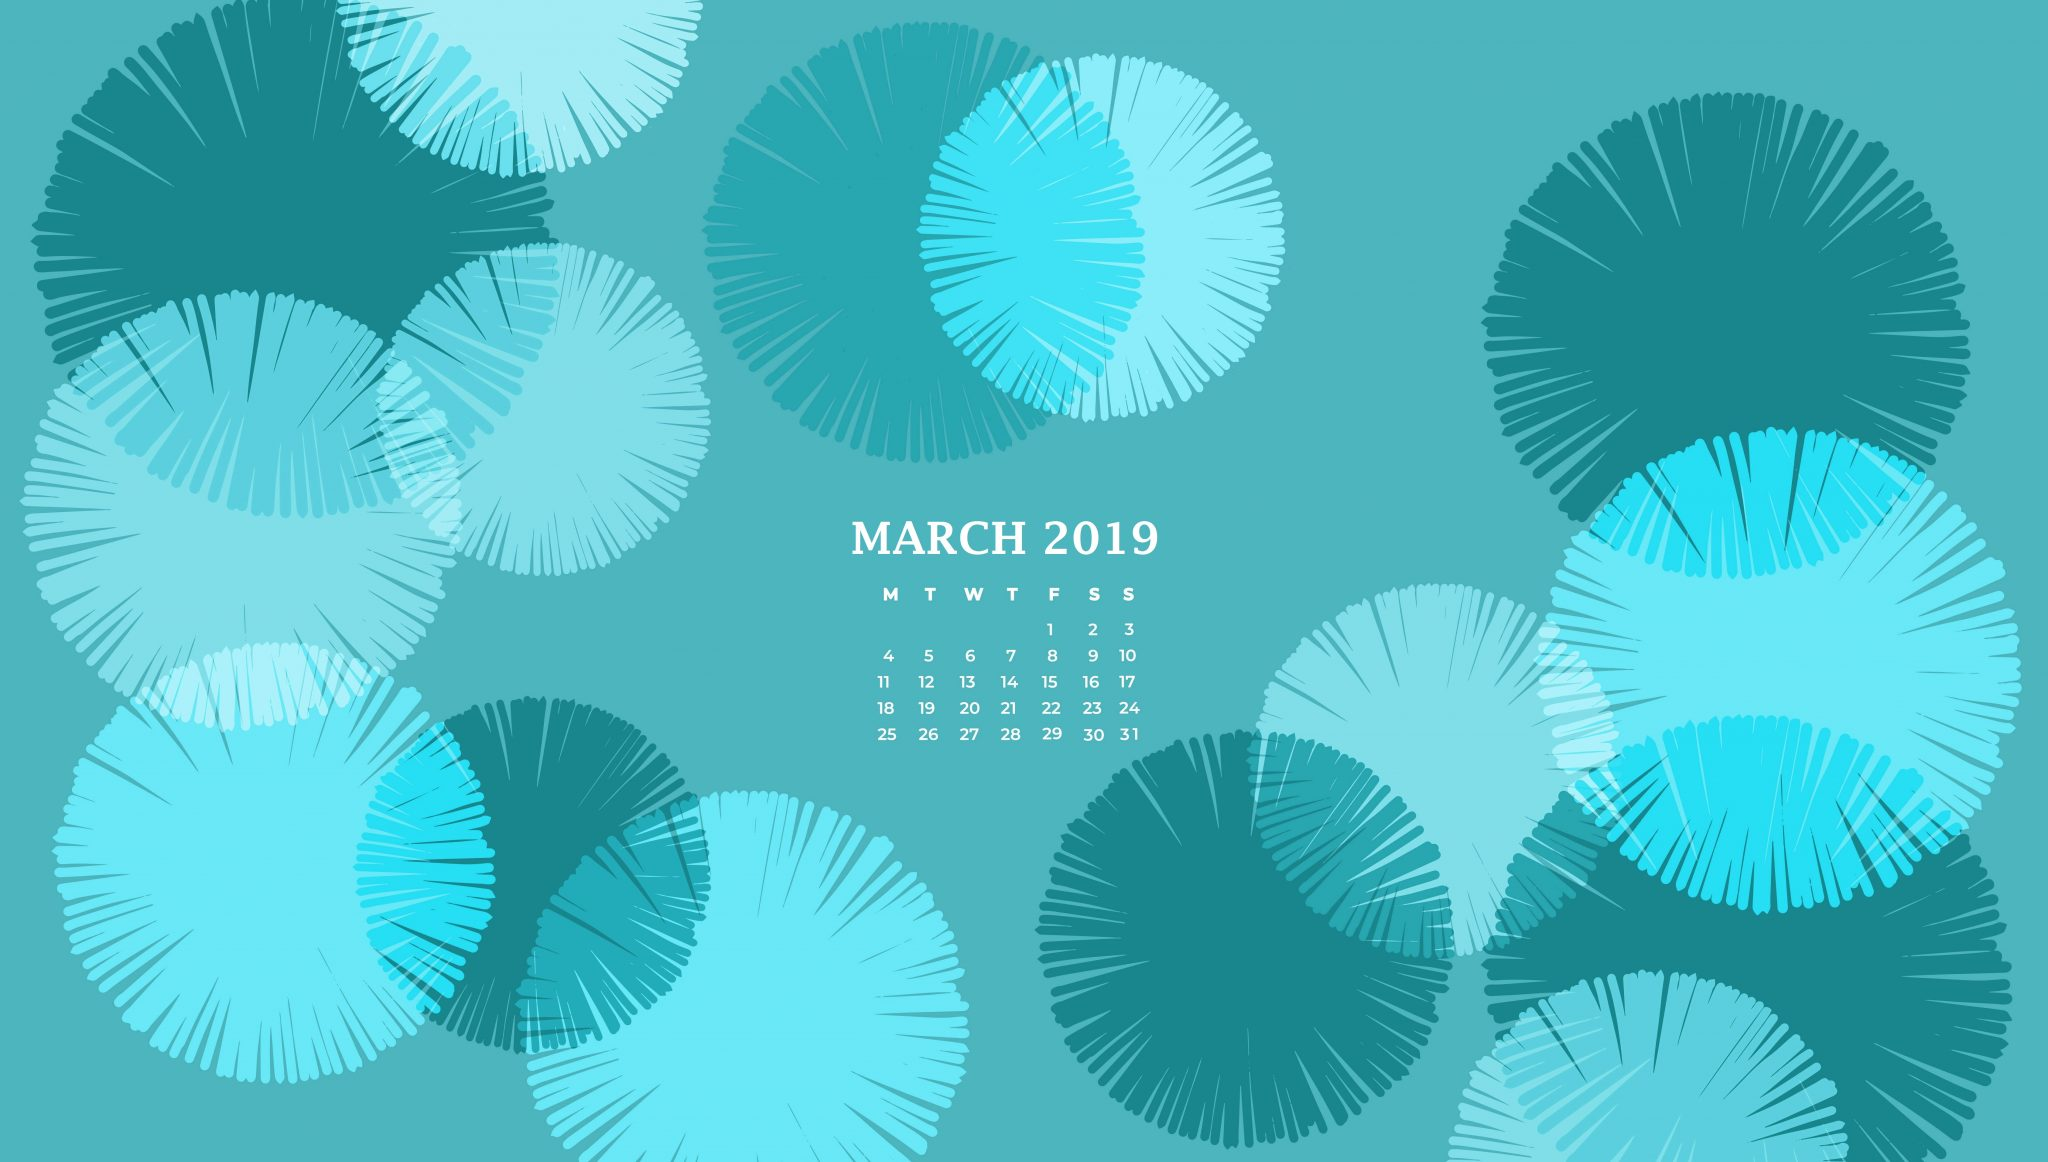 March 2019 Desktop Background Calendar